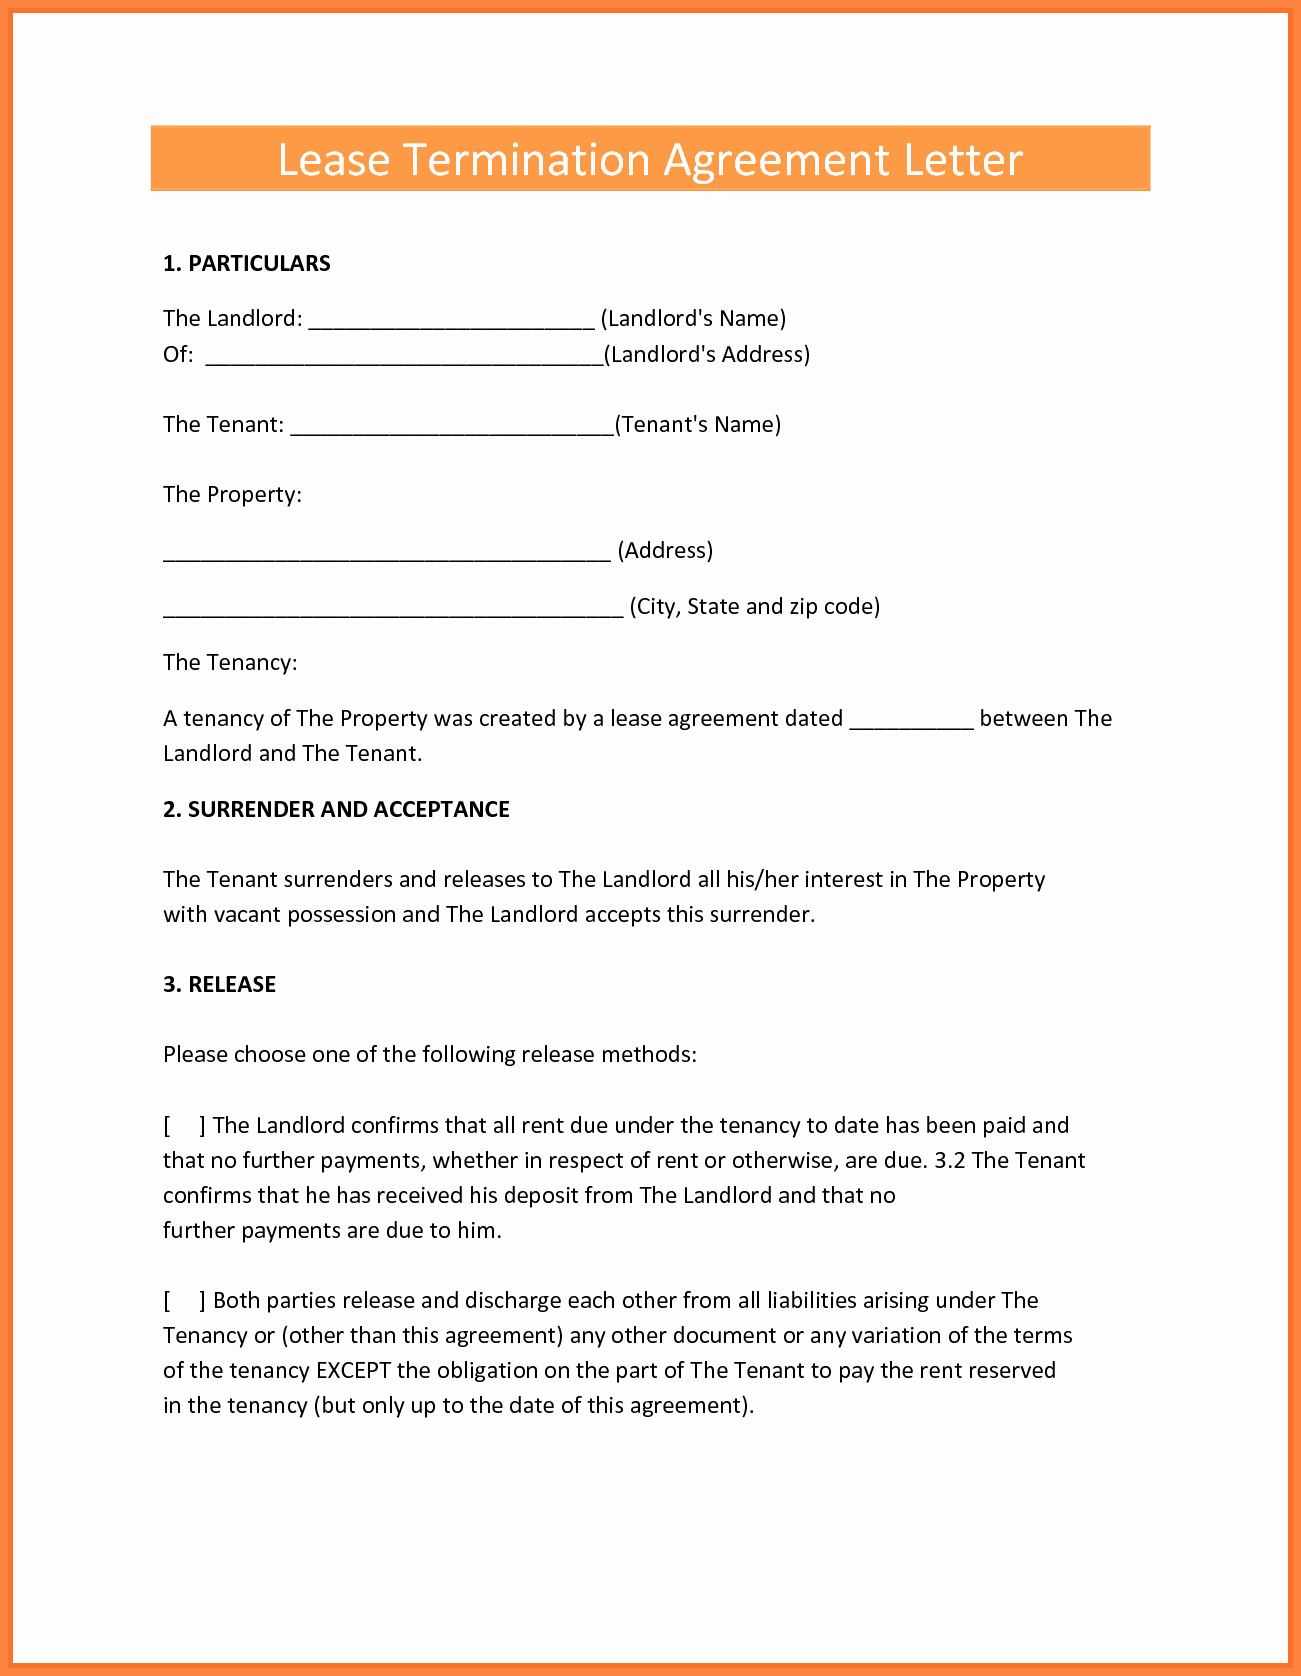 End Of Lease Letter Lovely 8 Termination Of Rental Agreement Letter by Tenant